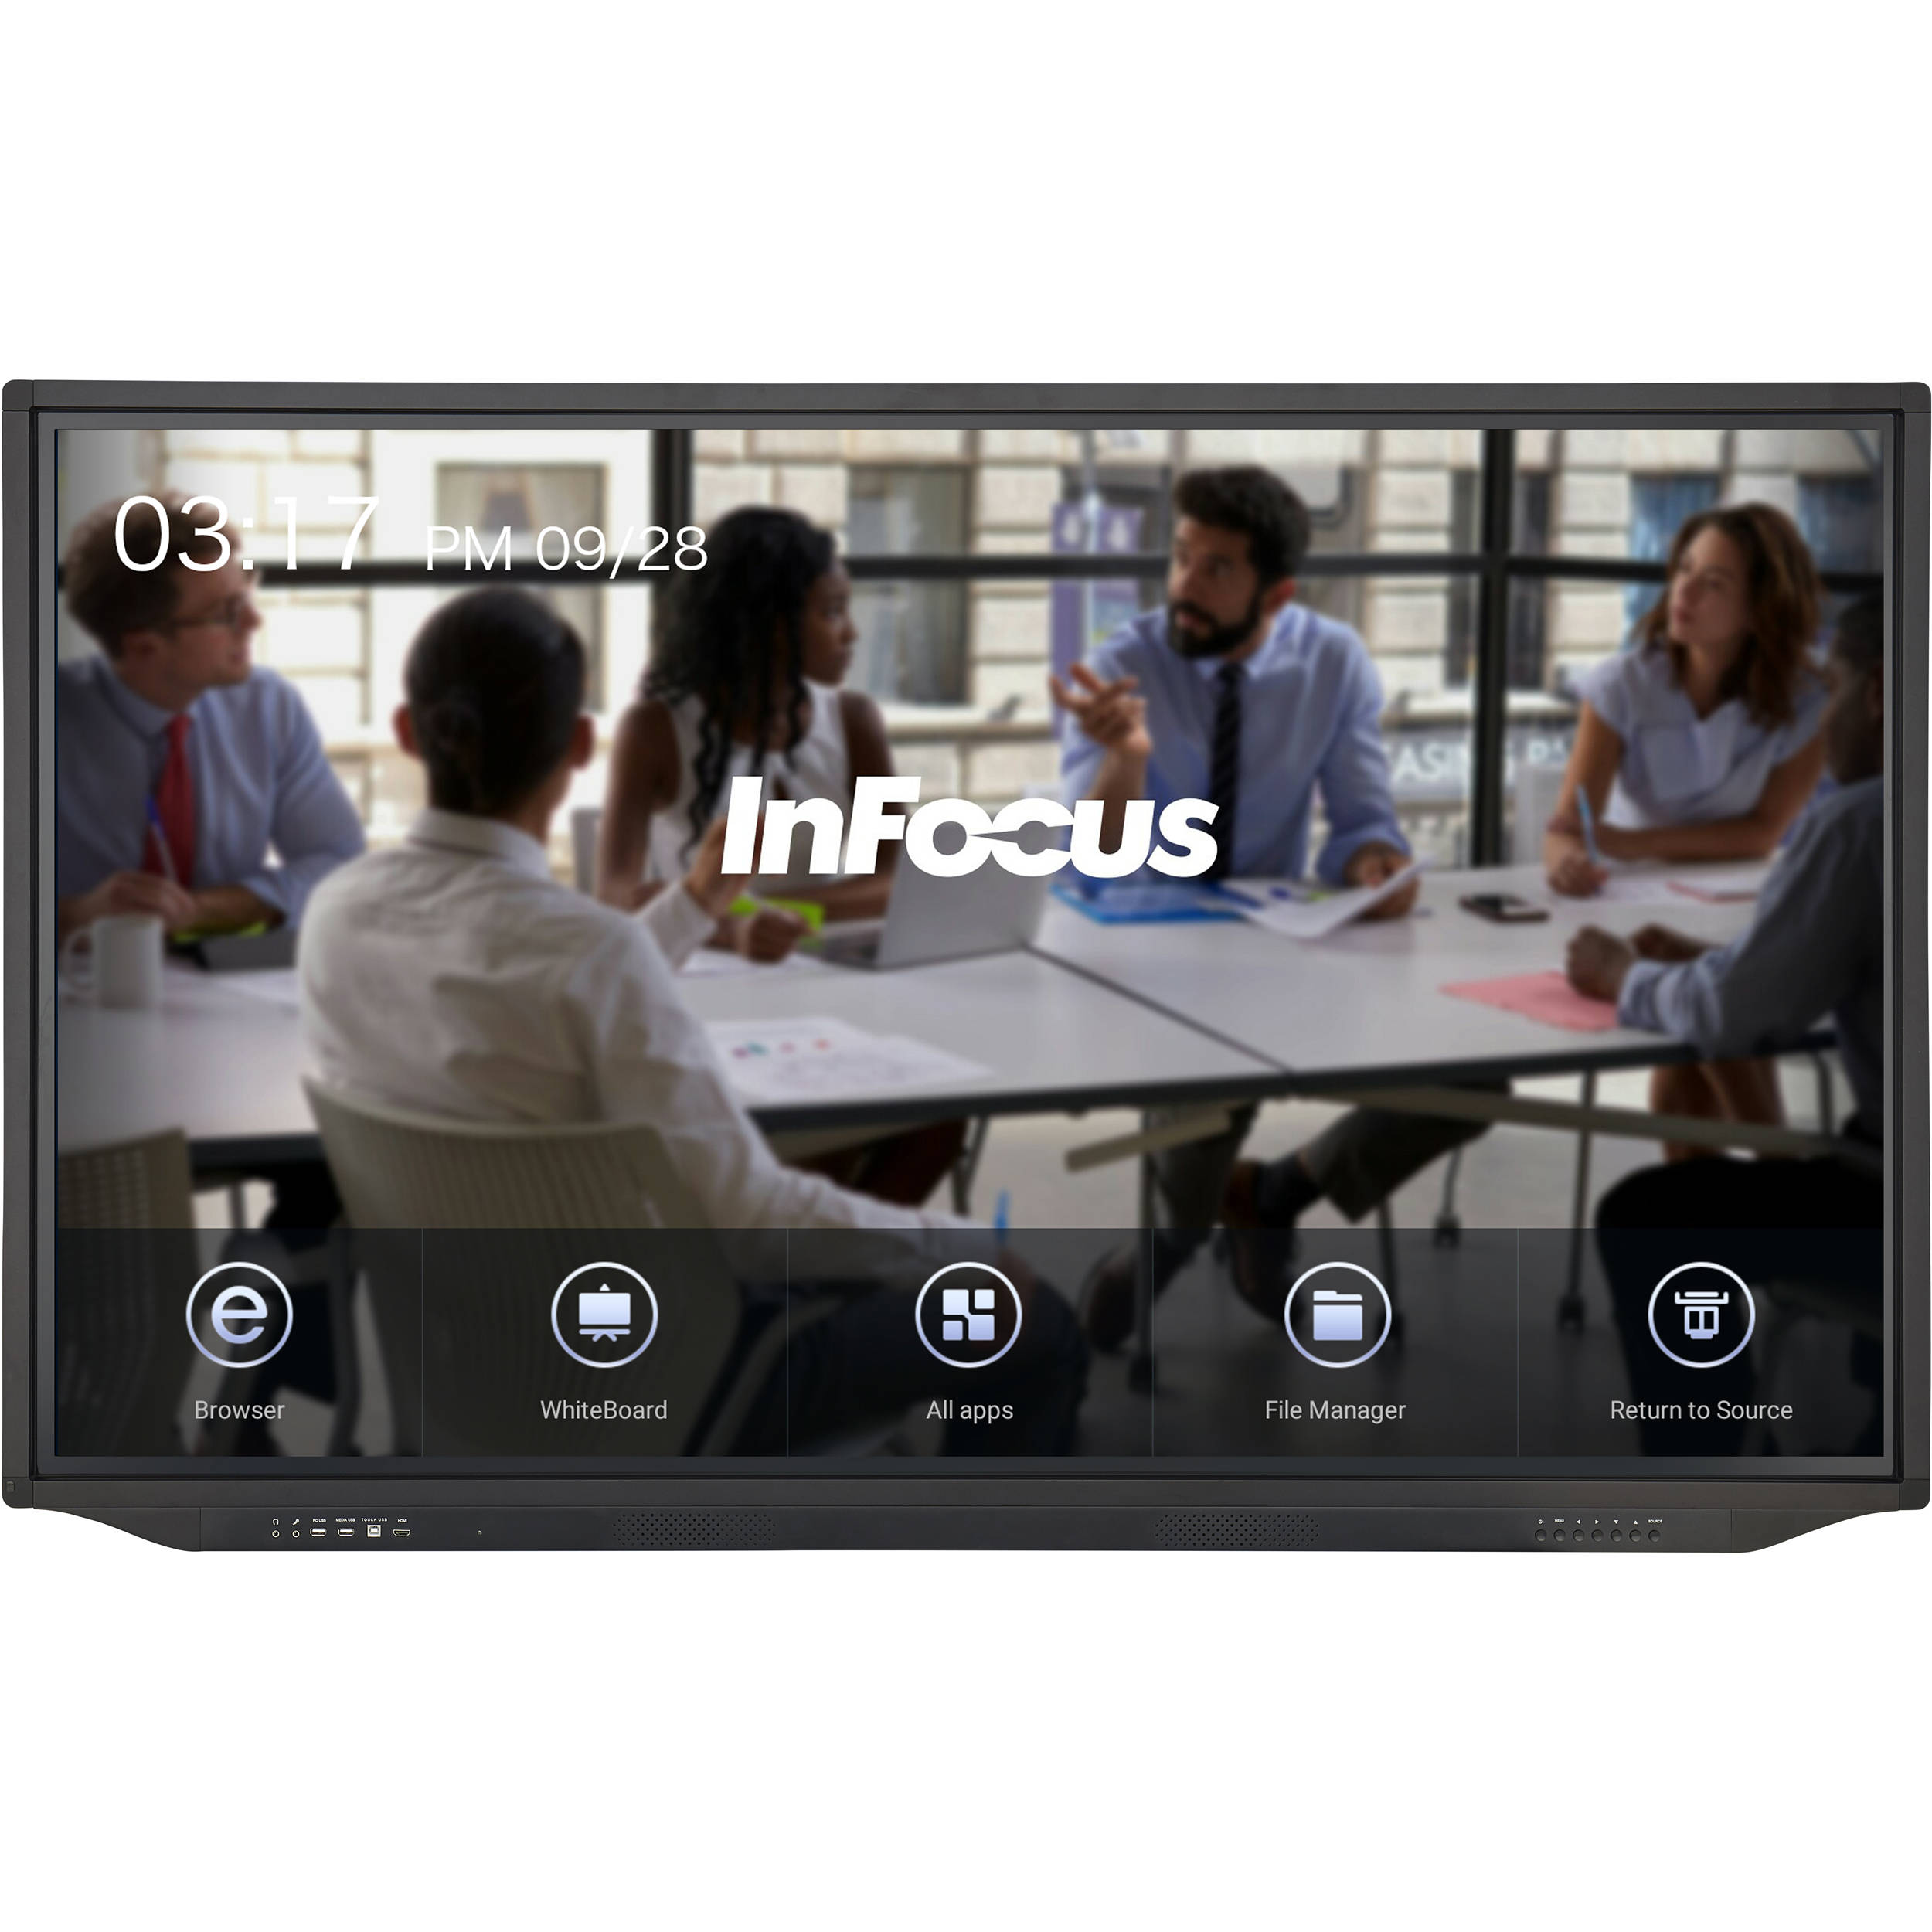 Infocus Jtouch Plus 65 Inch 4k Anti Glare Display Inf6533 Bh Guitar Humbucker Coax Wiring Diagrams With Android